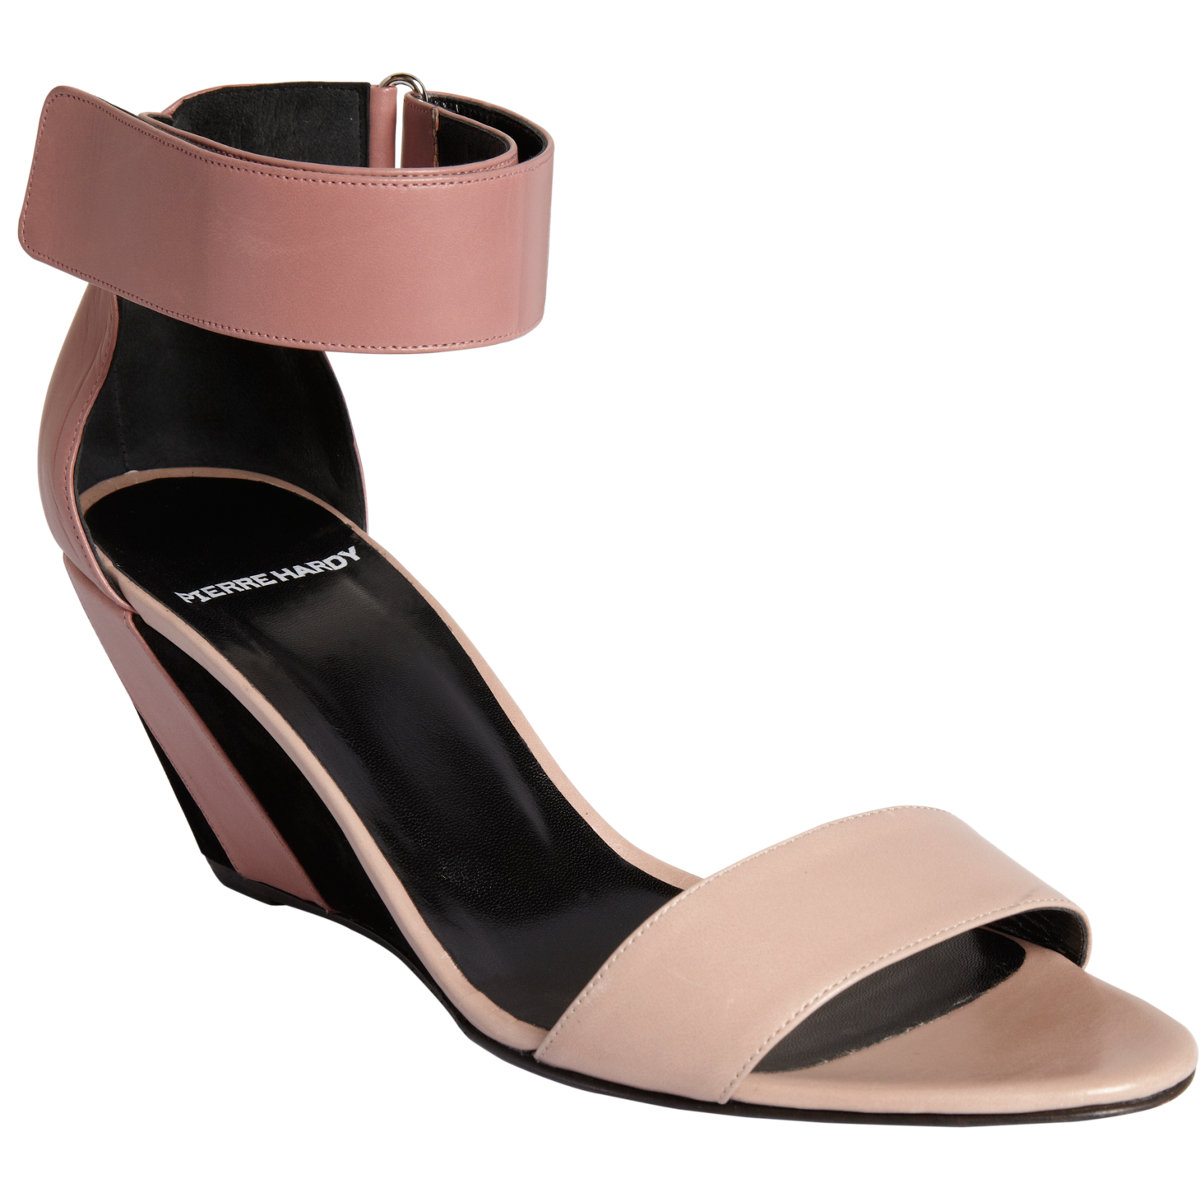 6ceac198bcf0 Pierre Hardy Wide Ankle Strap Wedge Sandal in Pink - Lyst